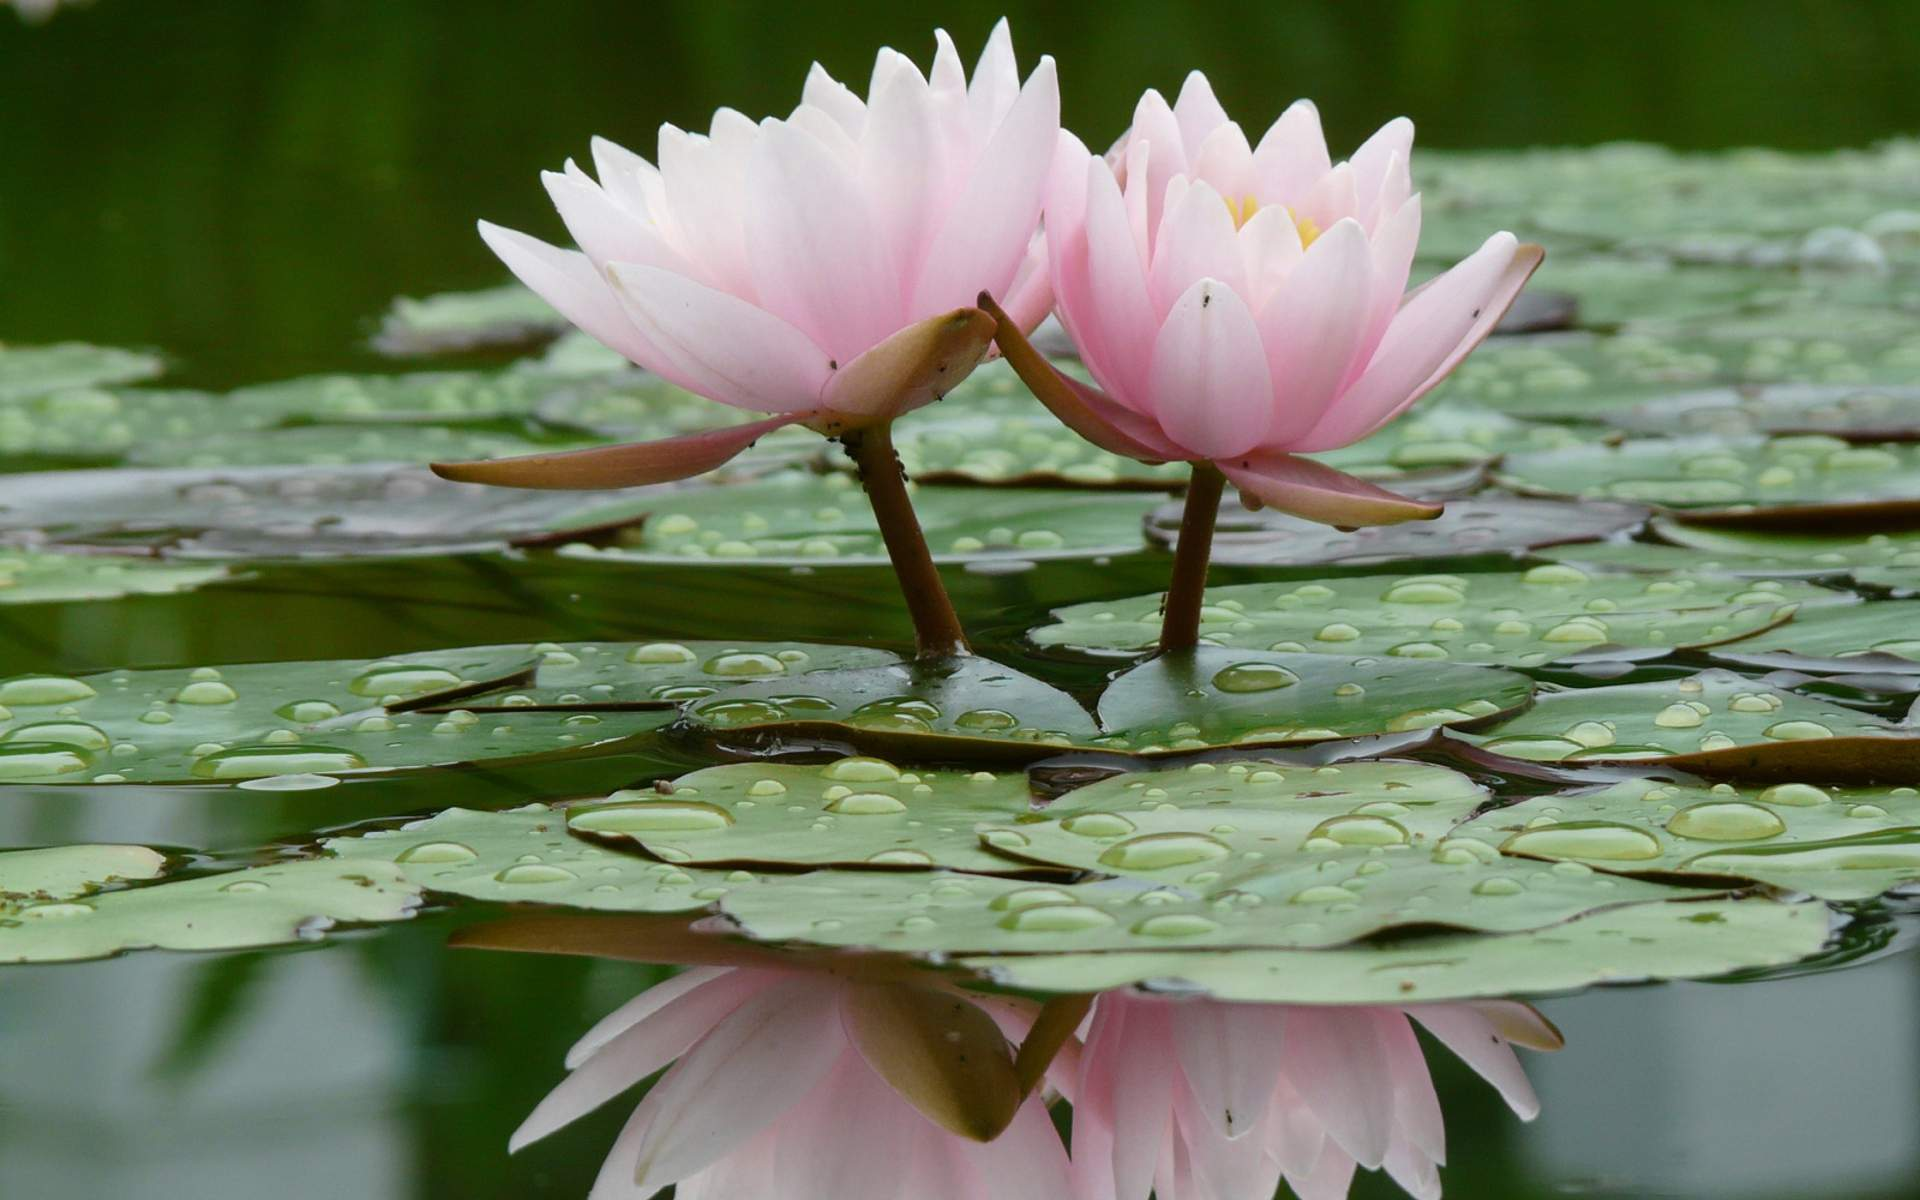 Lotus flower wallpapers wallpaper cave lotus flowers wallpapers full hd wallpaper search izmirmasajfo